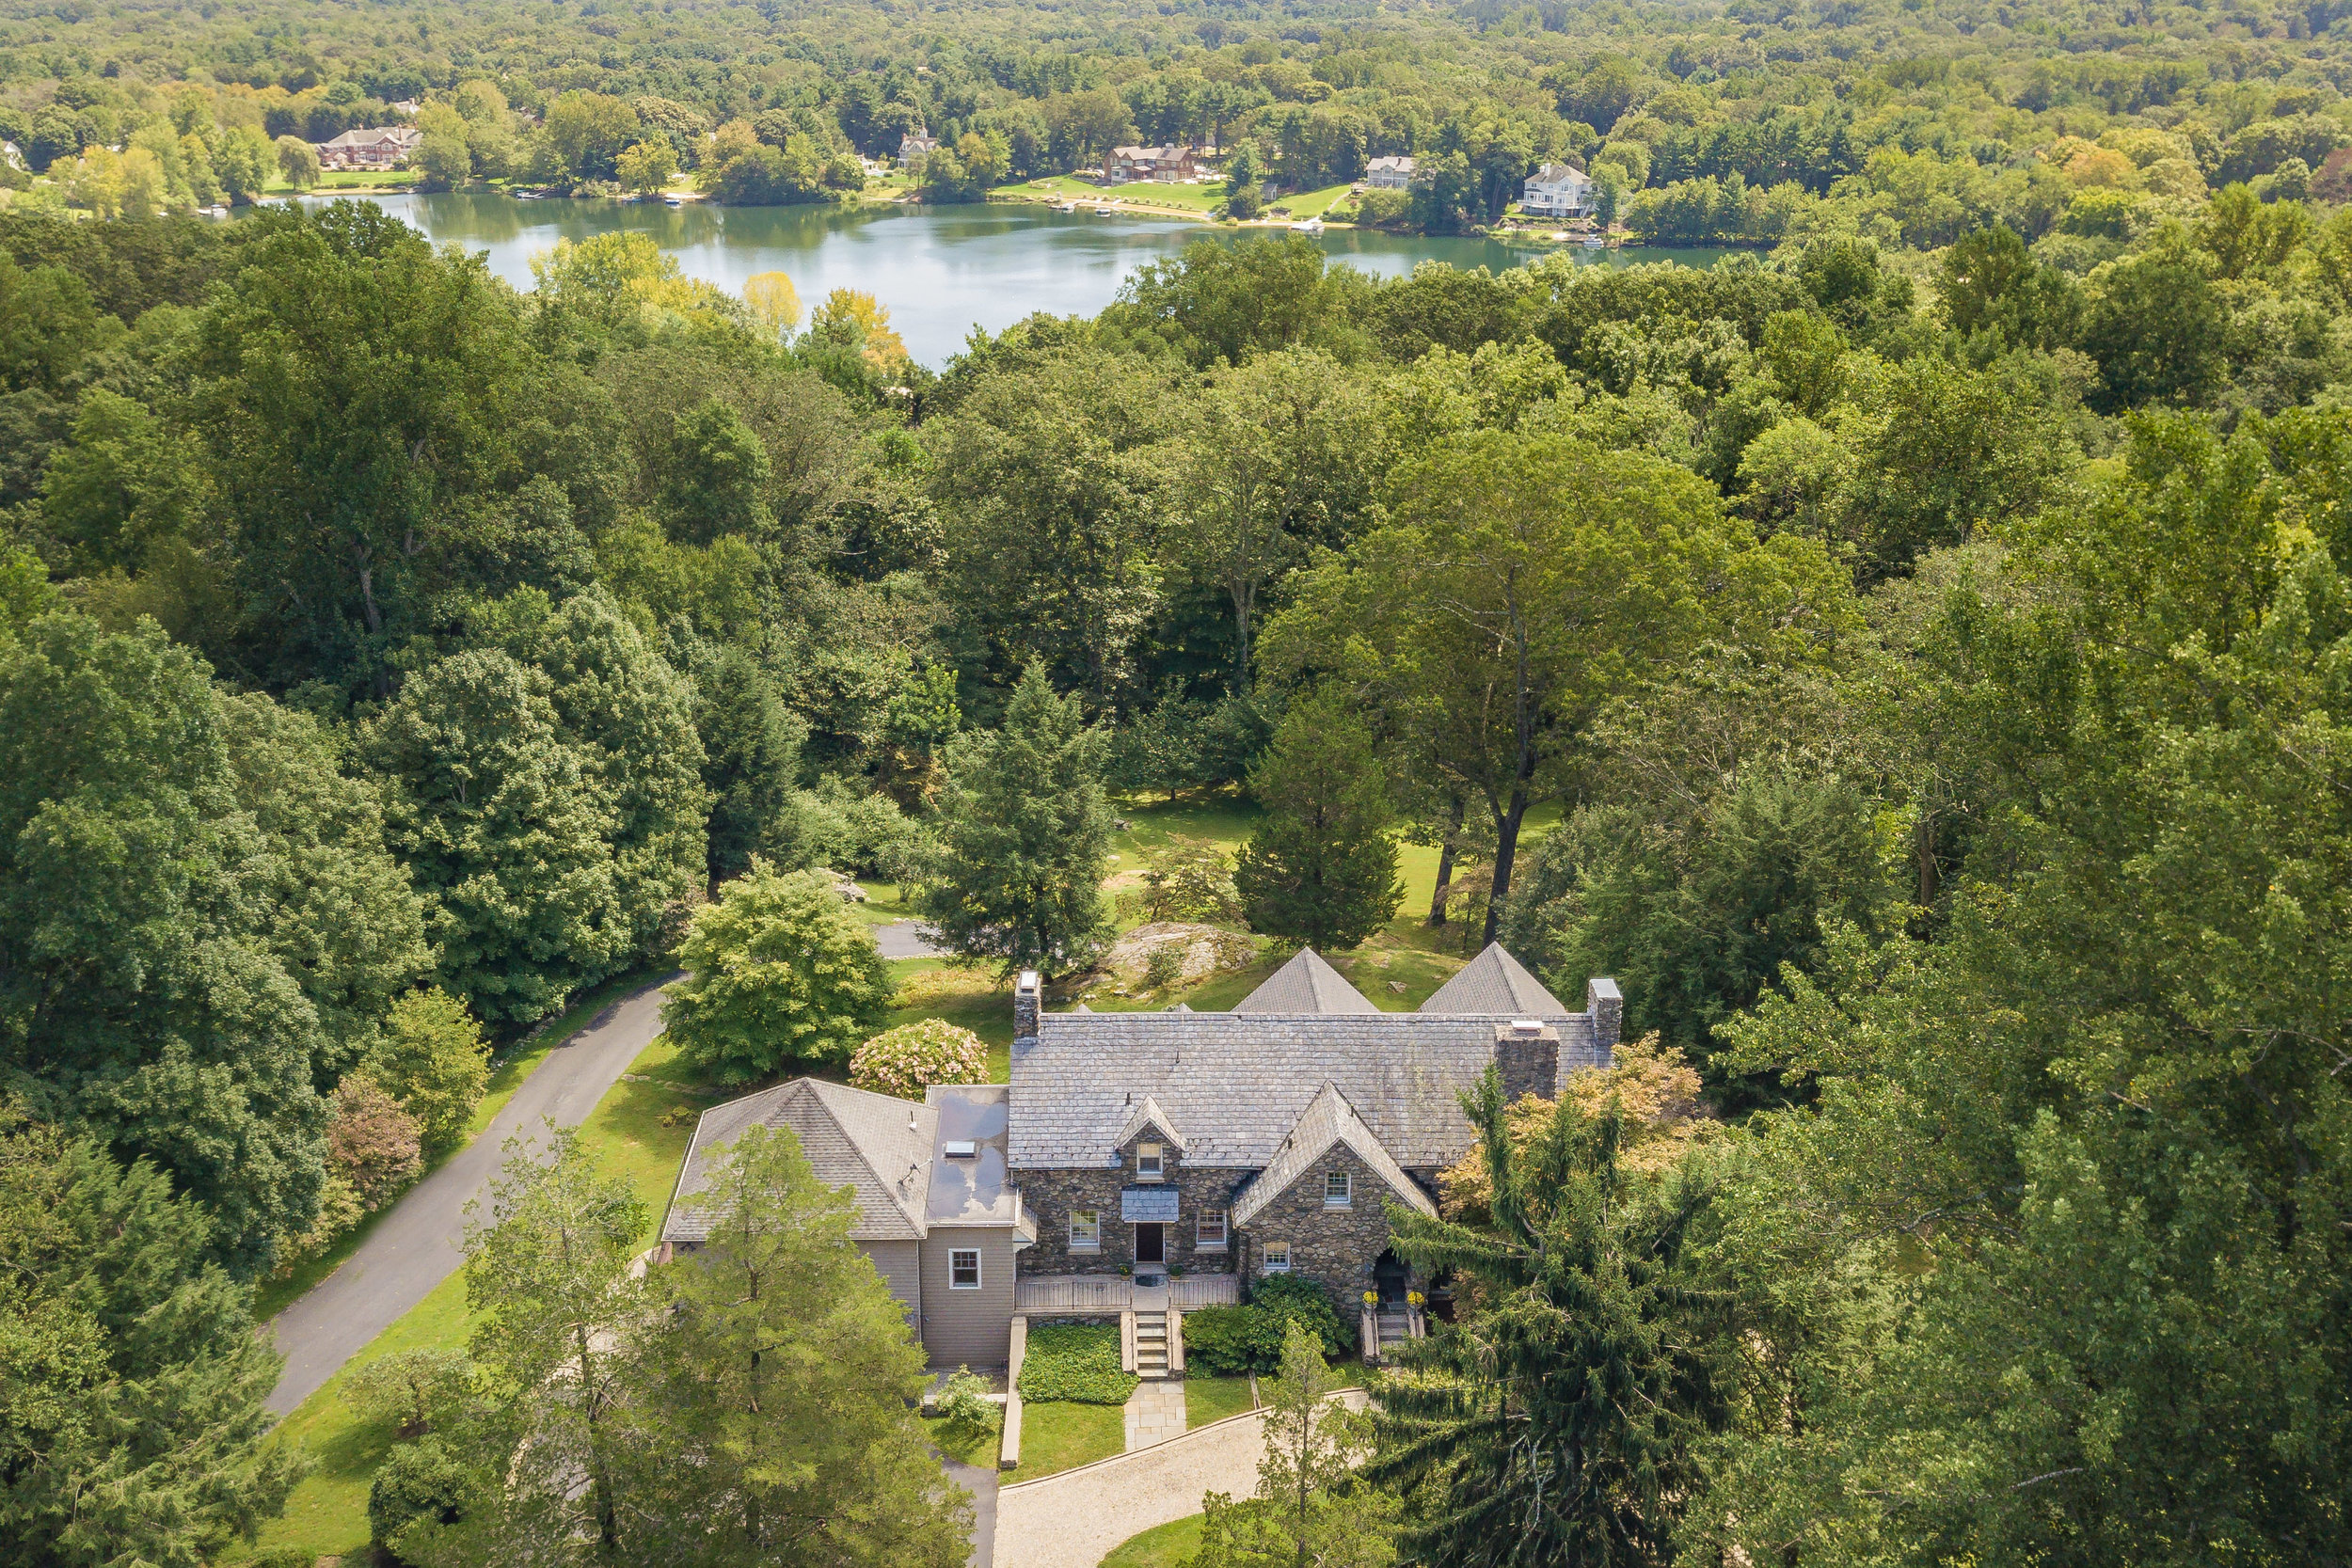 Drone with Lake_65 Cavalry Rd, Weston, CT 06883-2.jpg